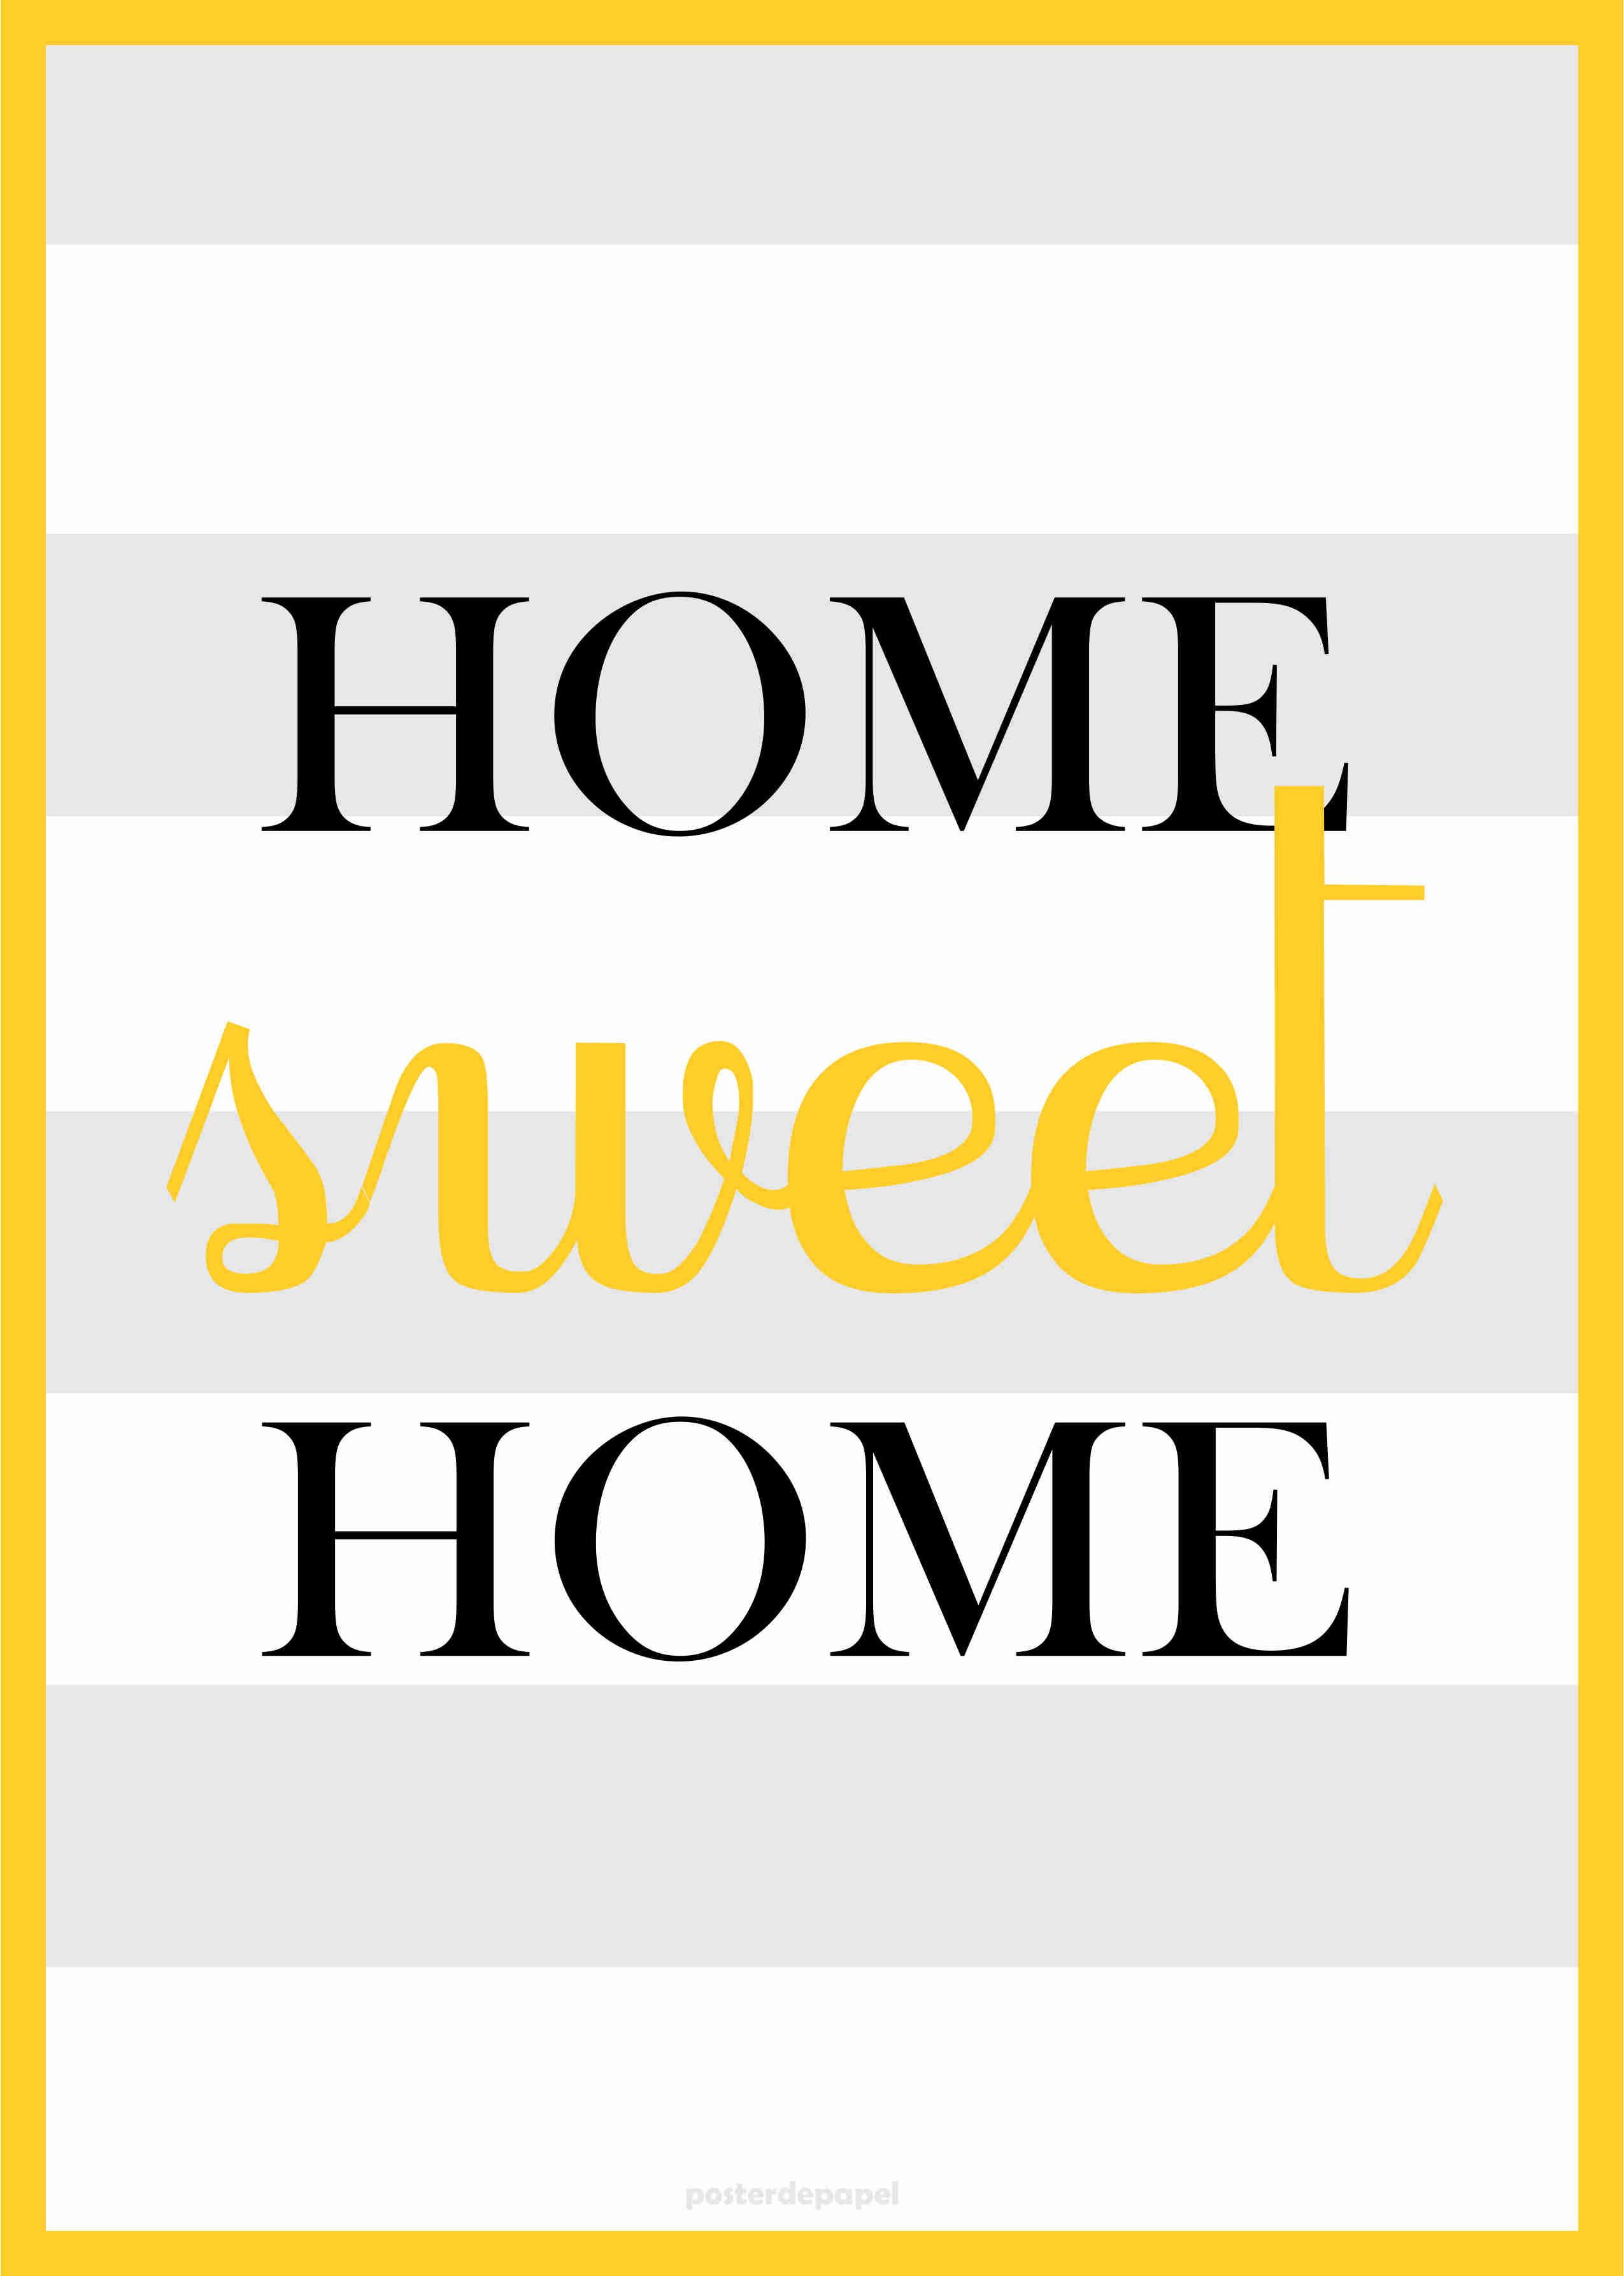 Pin By Gisel Palacios On Quadros Posters Home Poster Sweet Home Poster